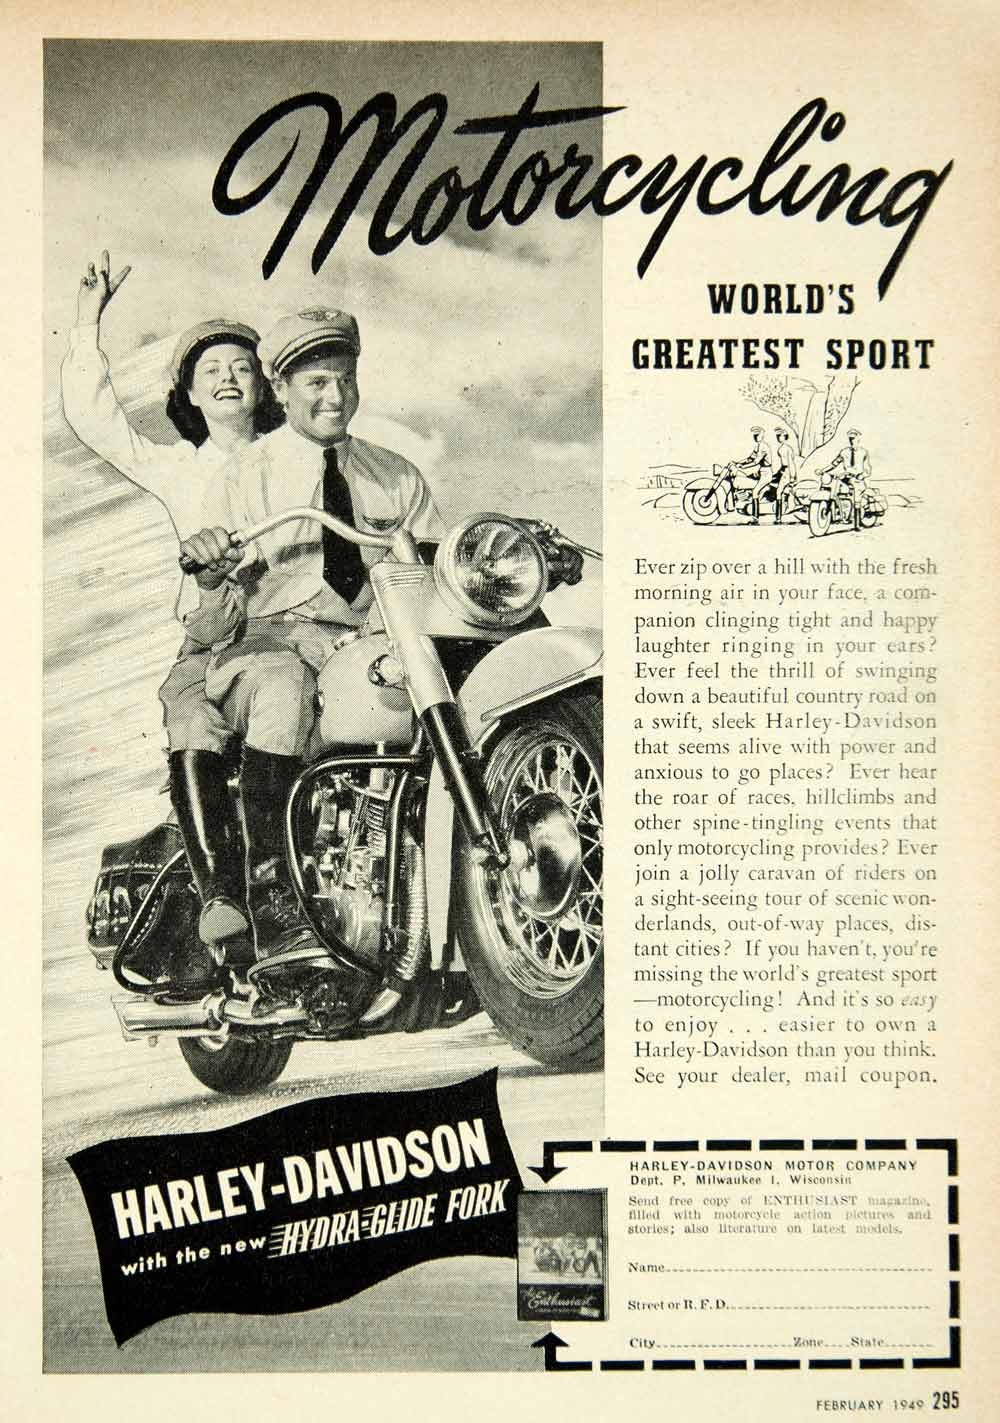 1949 Ad Harley Davidson Hydra Glide Fork Motorcycle Motorbike Enthusiast  PSC2